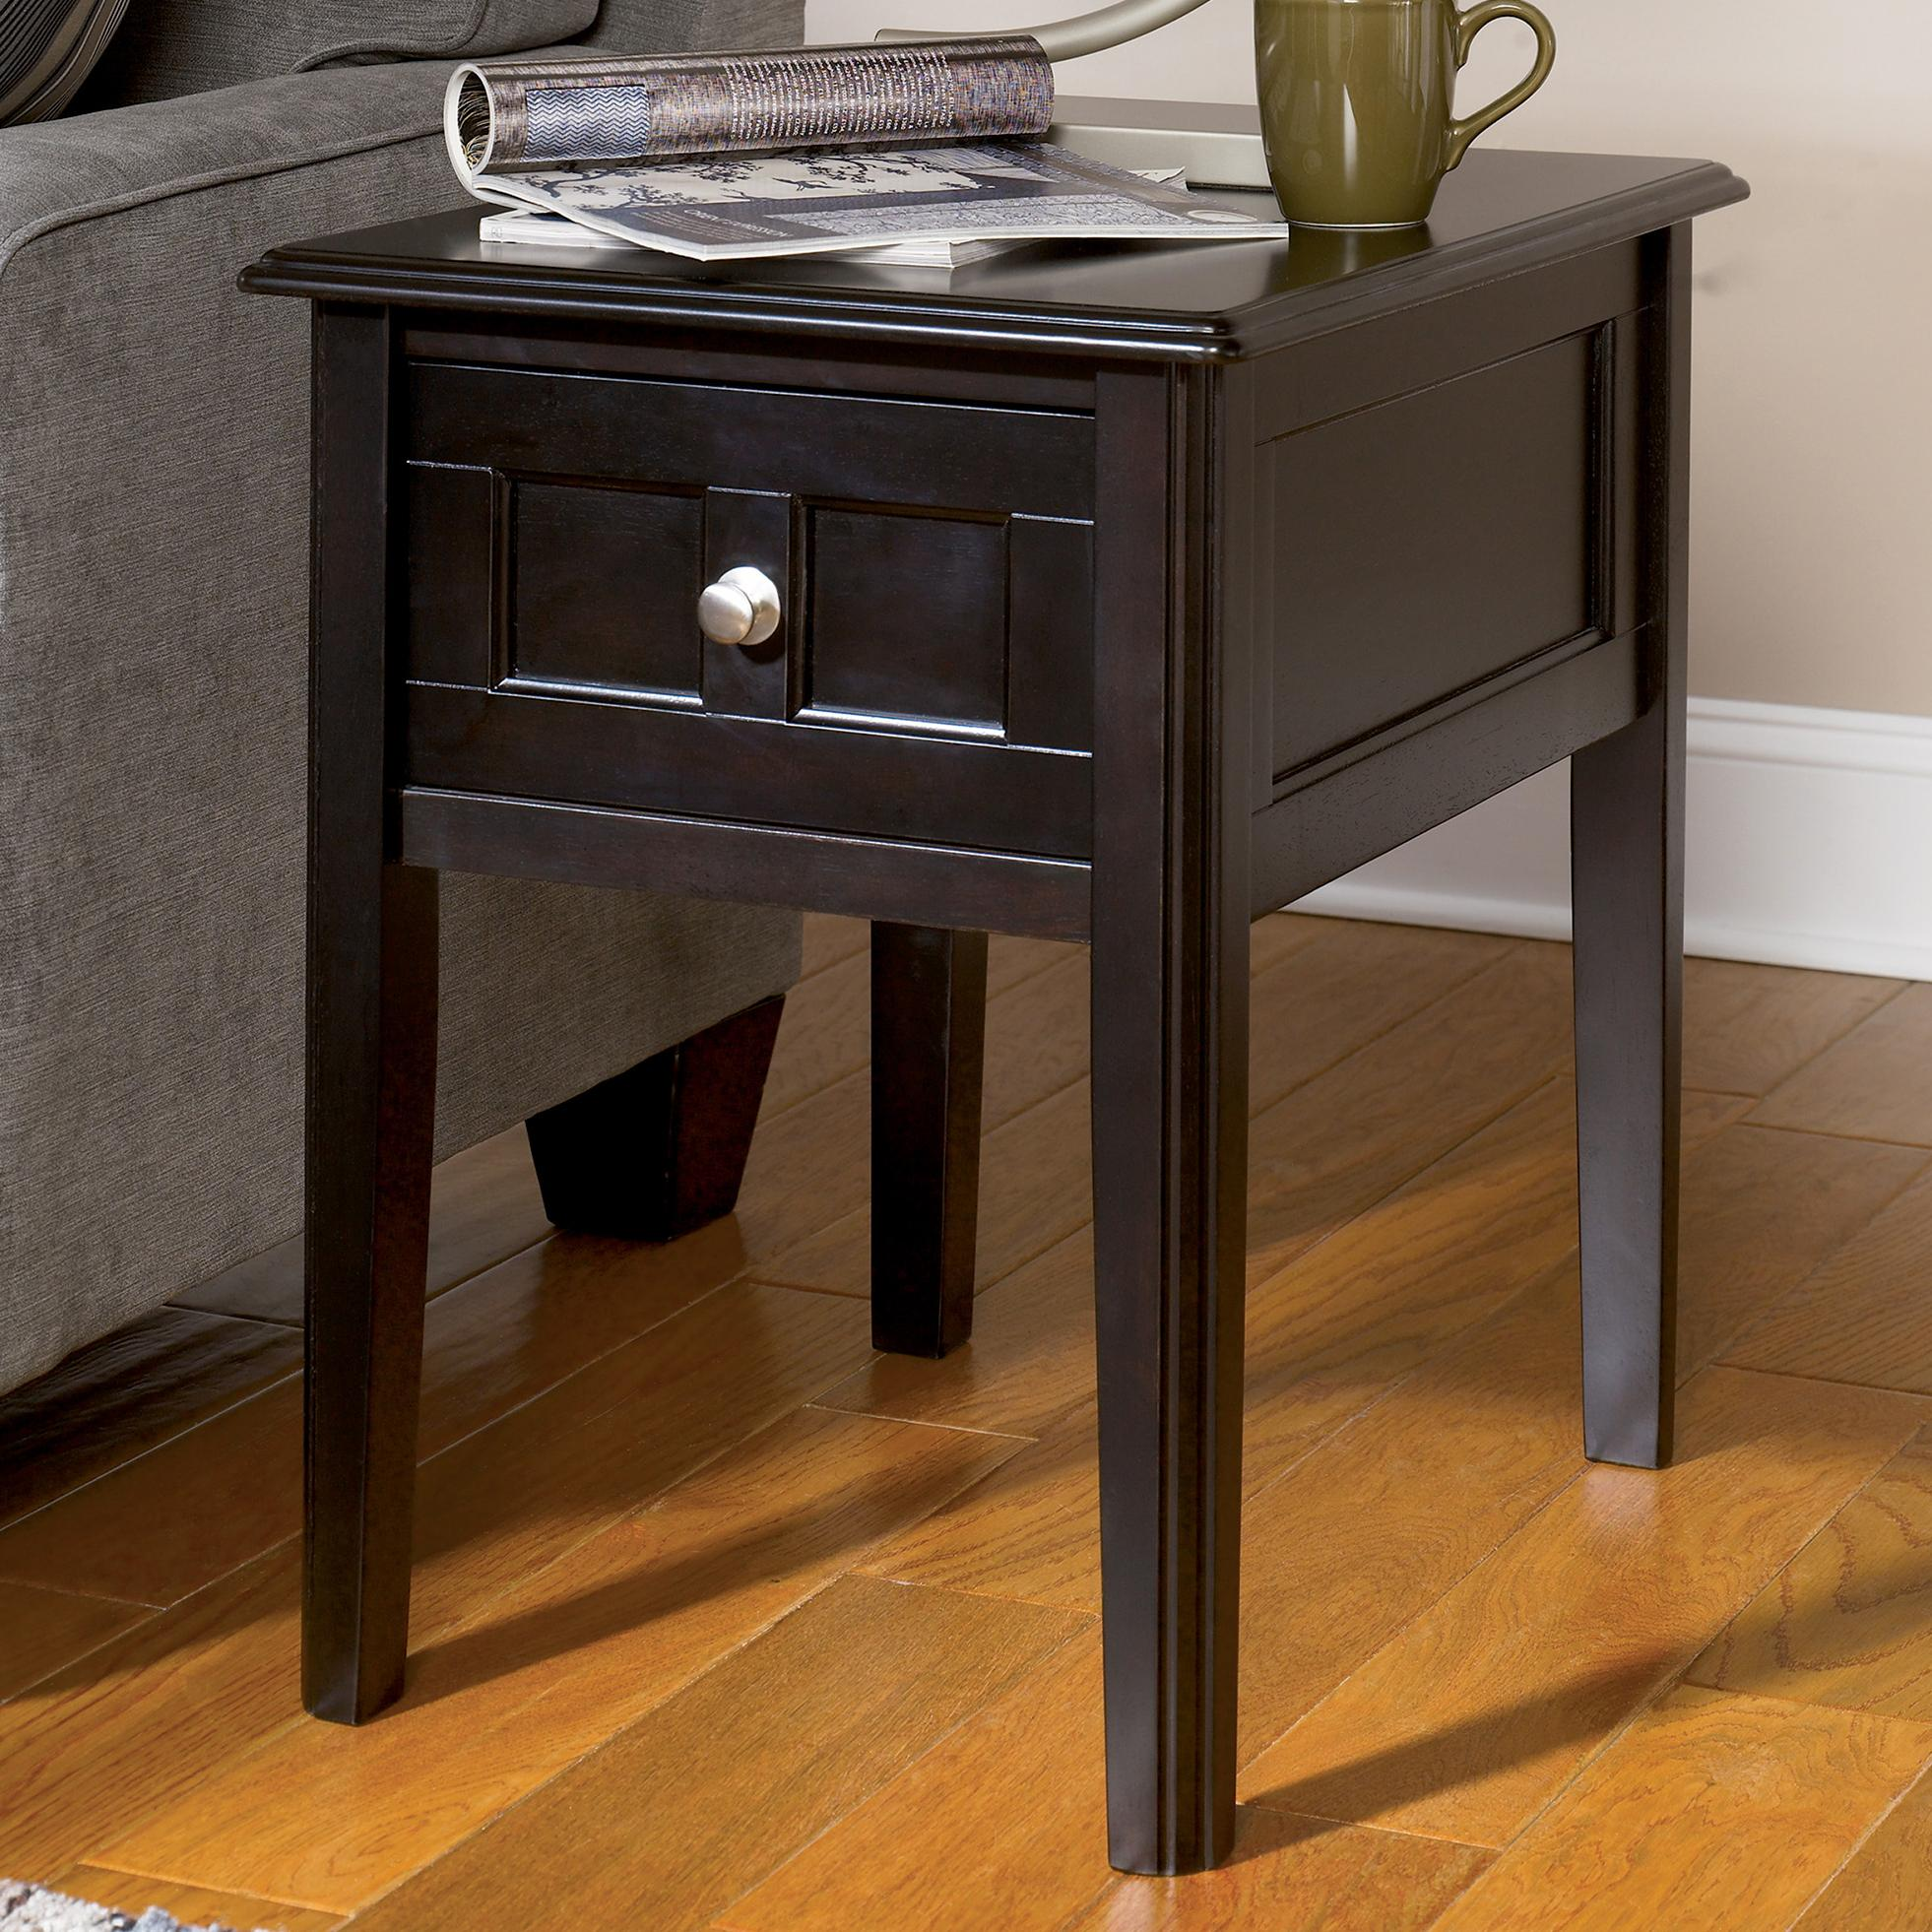 Signature Design by Ashley Henning Chairside End Table - Item Number: T479-7